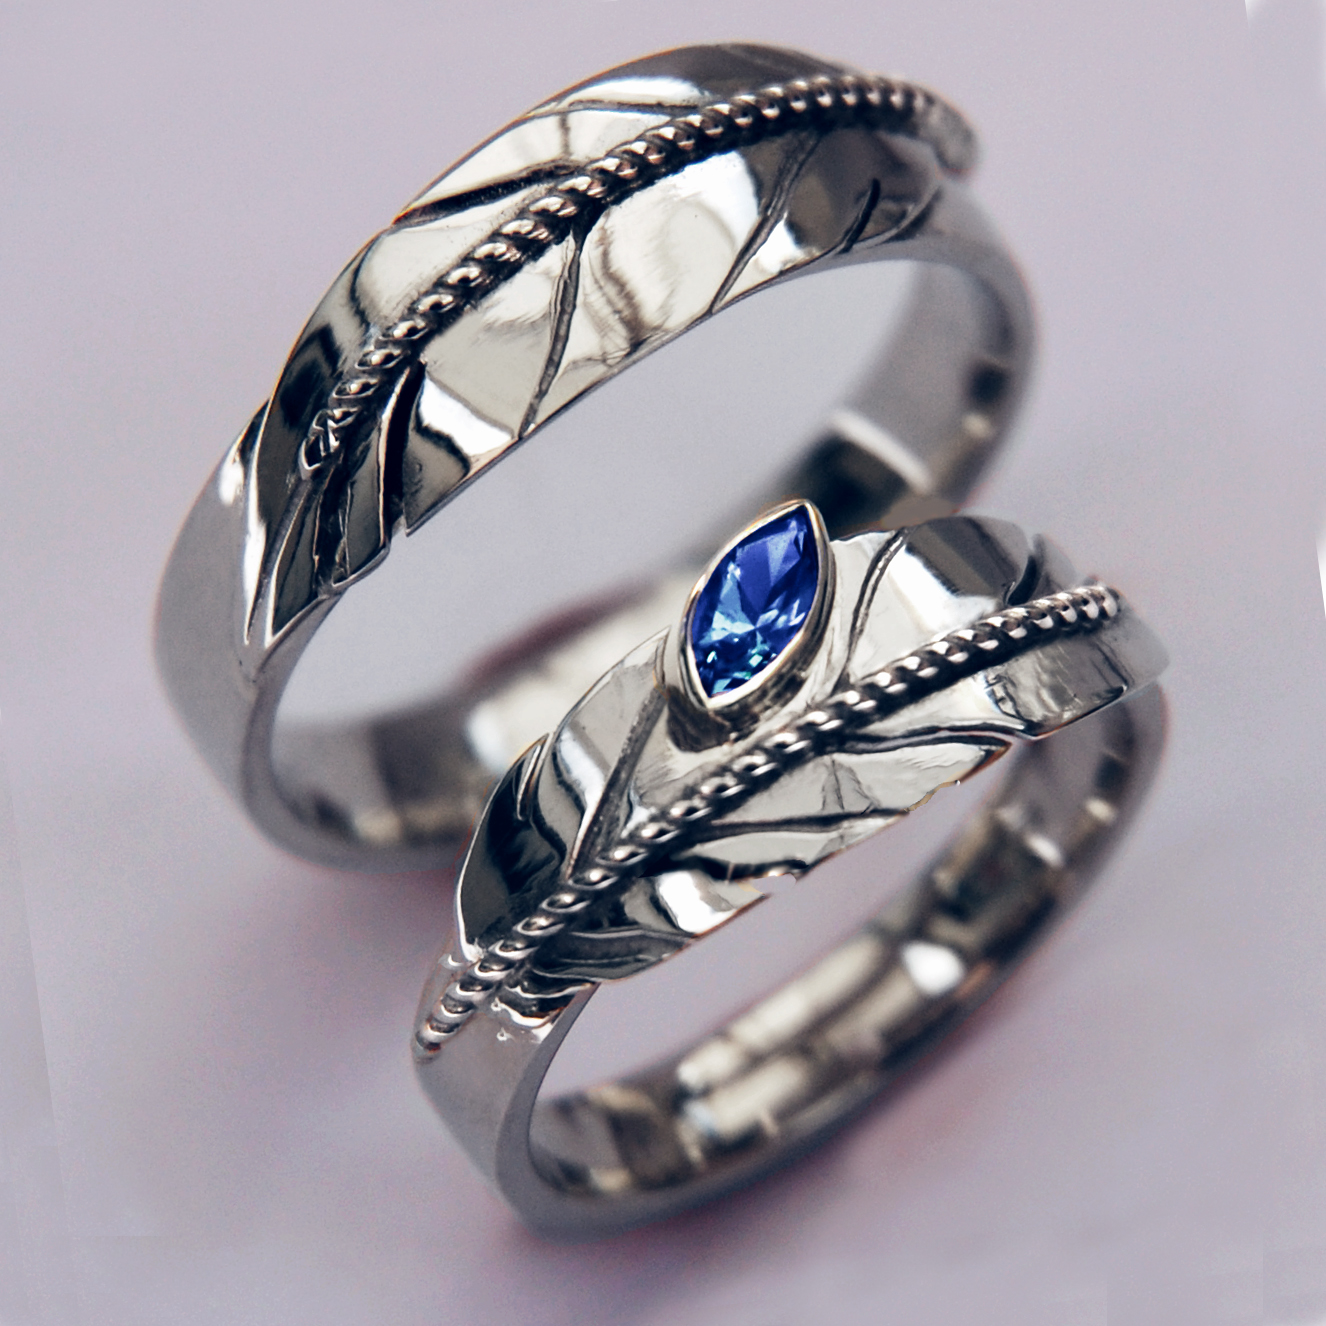 Click On The Links Beneath Ring Images To View Details Of Wedding Rings